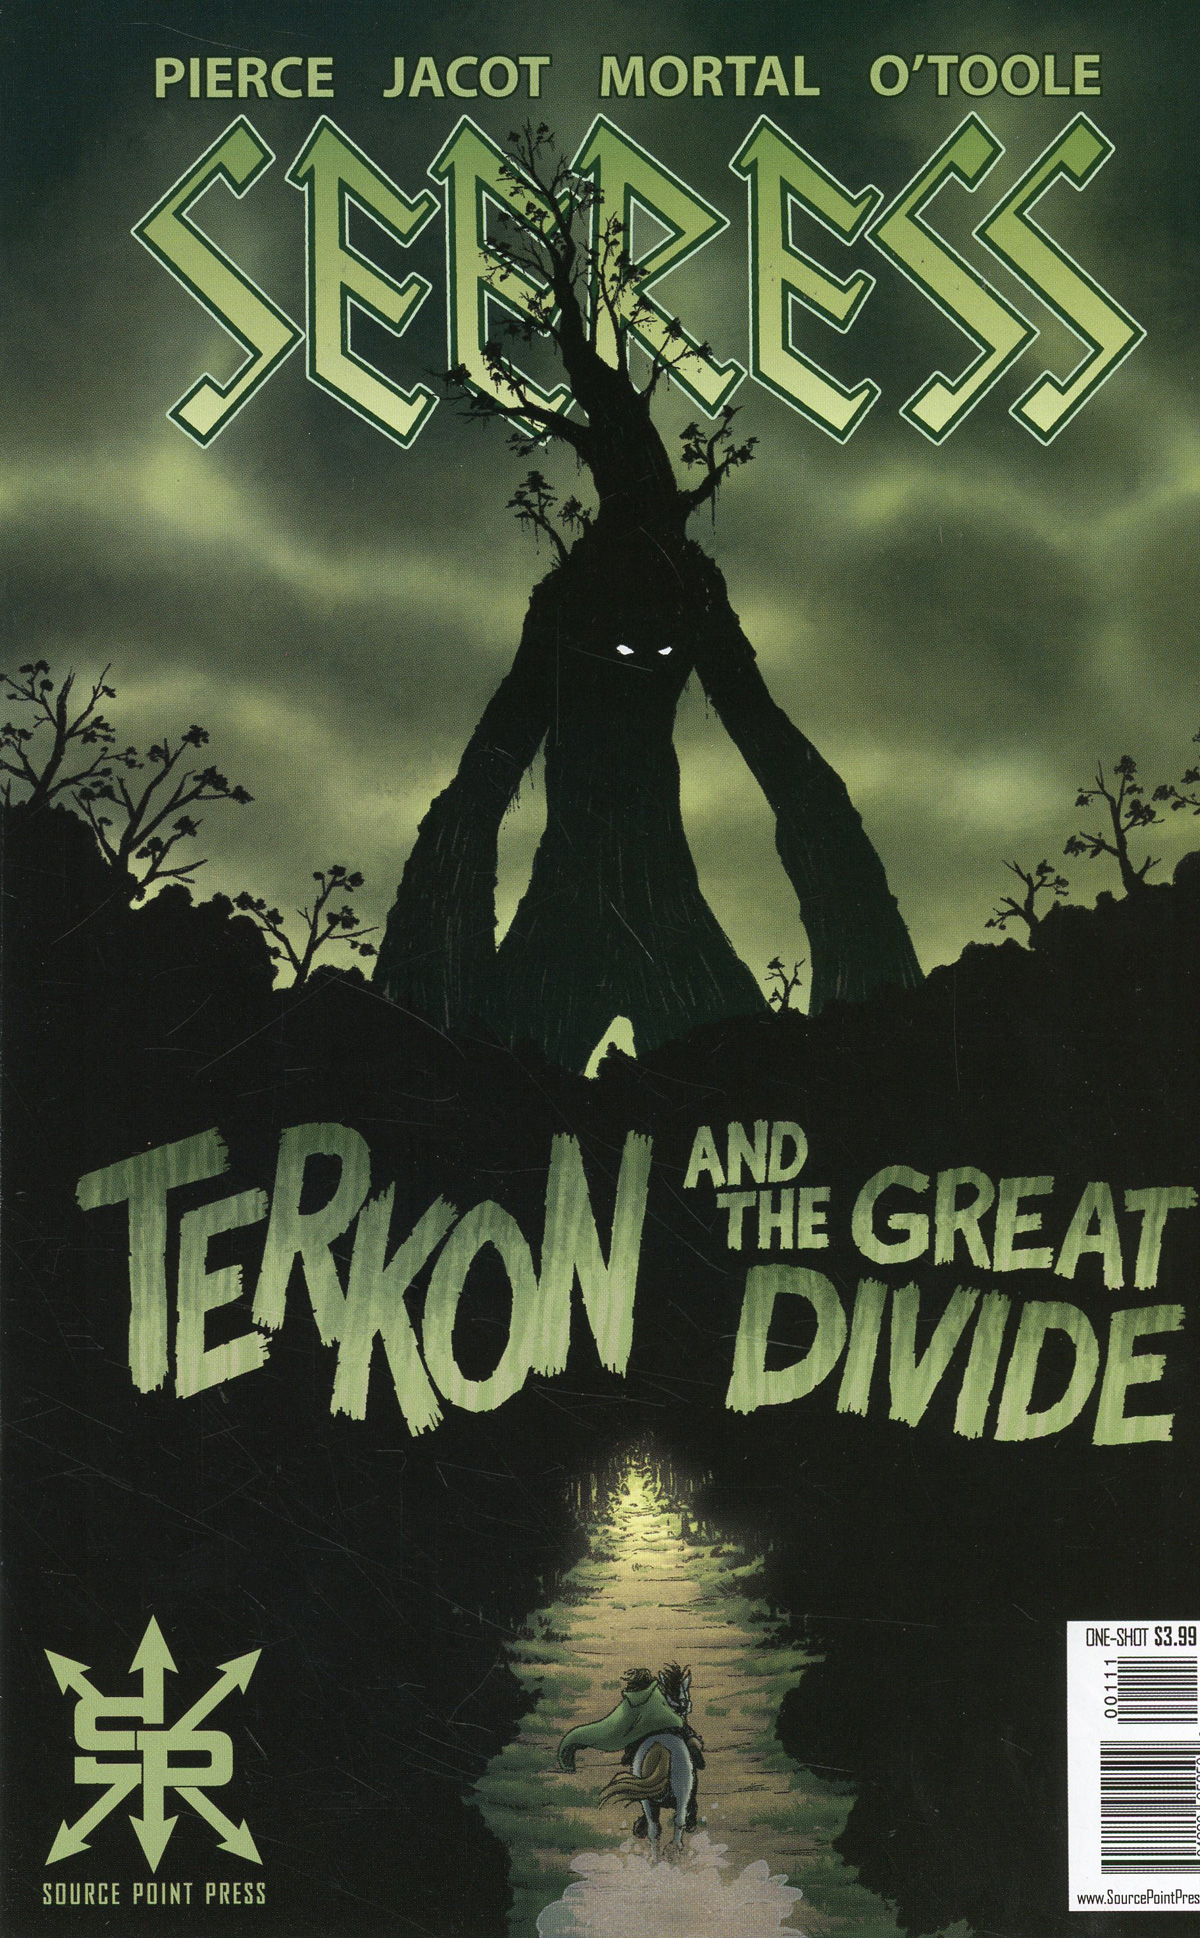 Seeress Terkon And The Great Divide One Shot